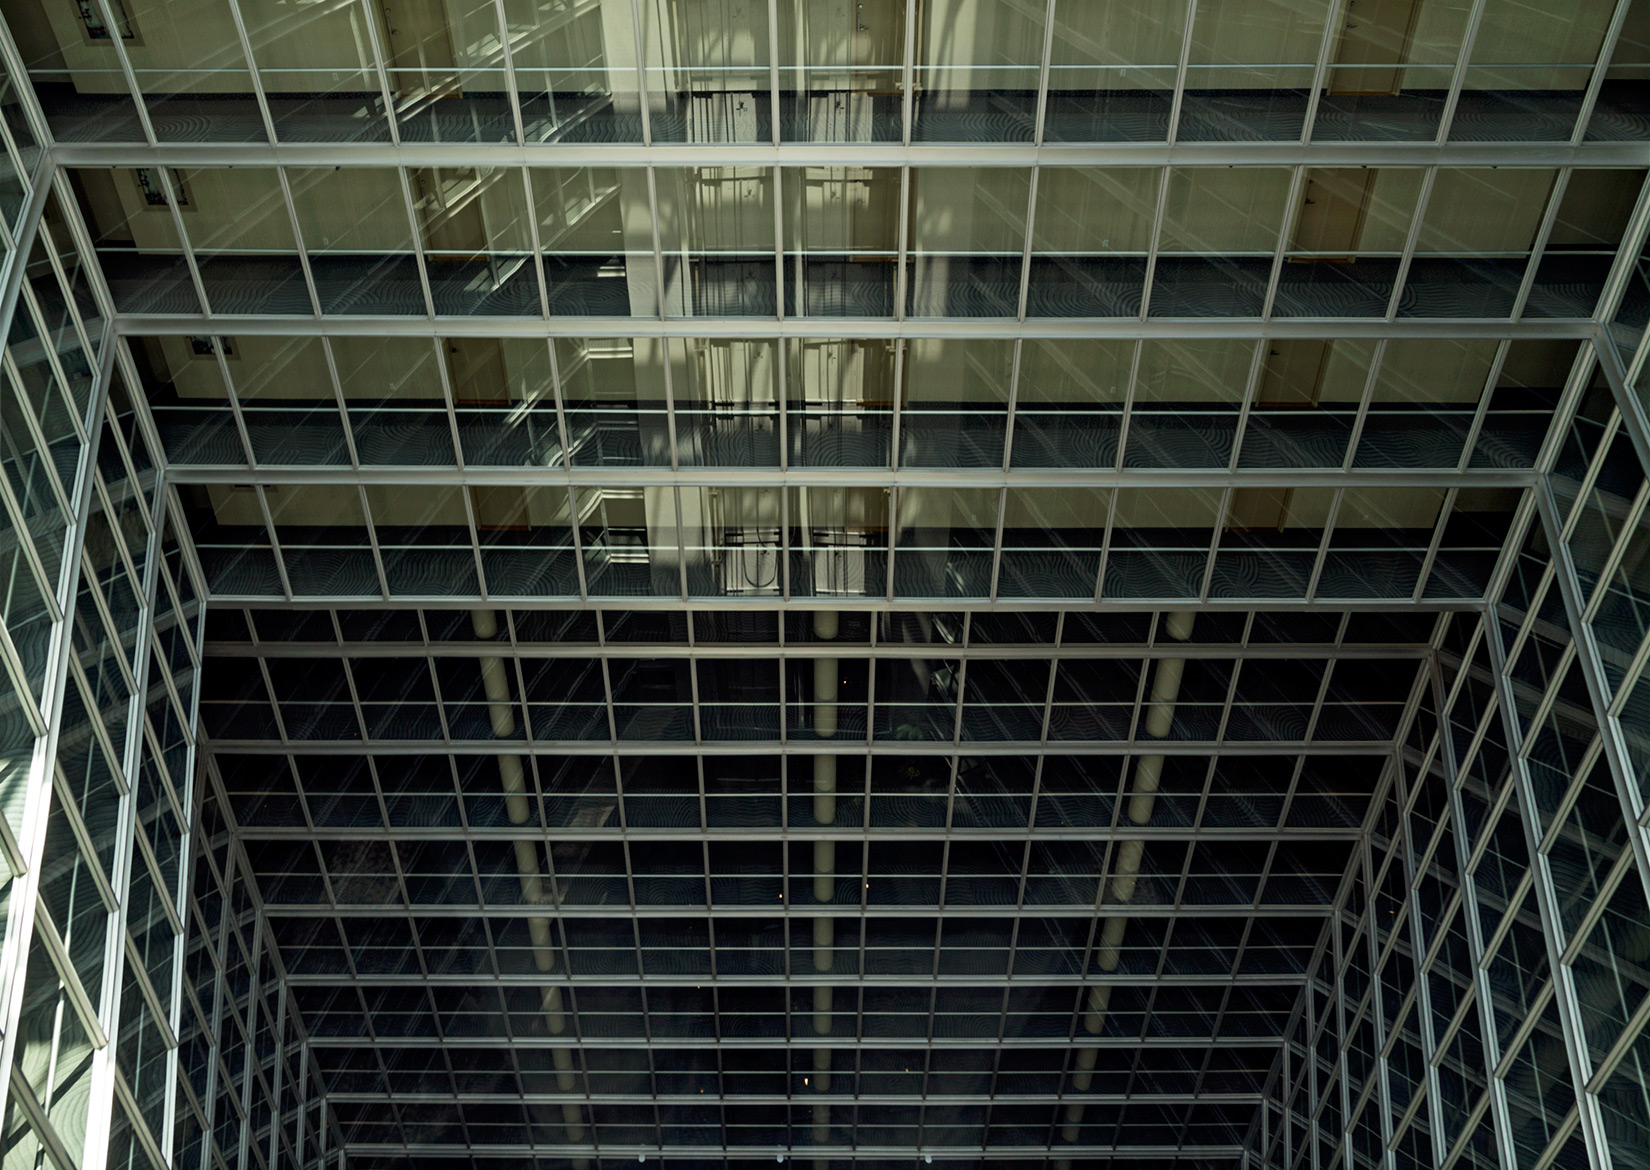 20150725. Looking down a 16 storey neomodern condominium atrum.